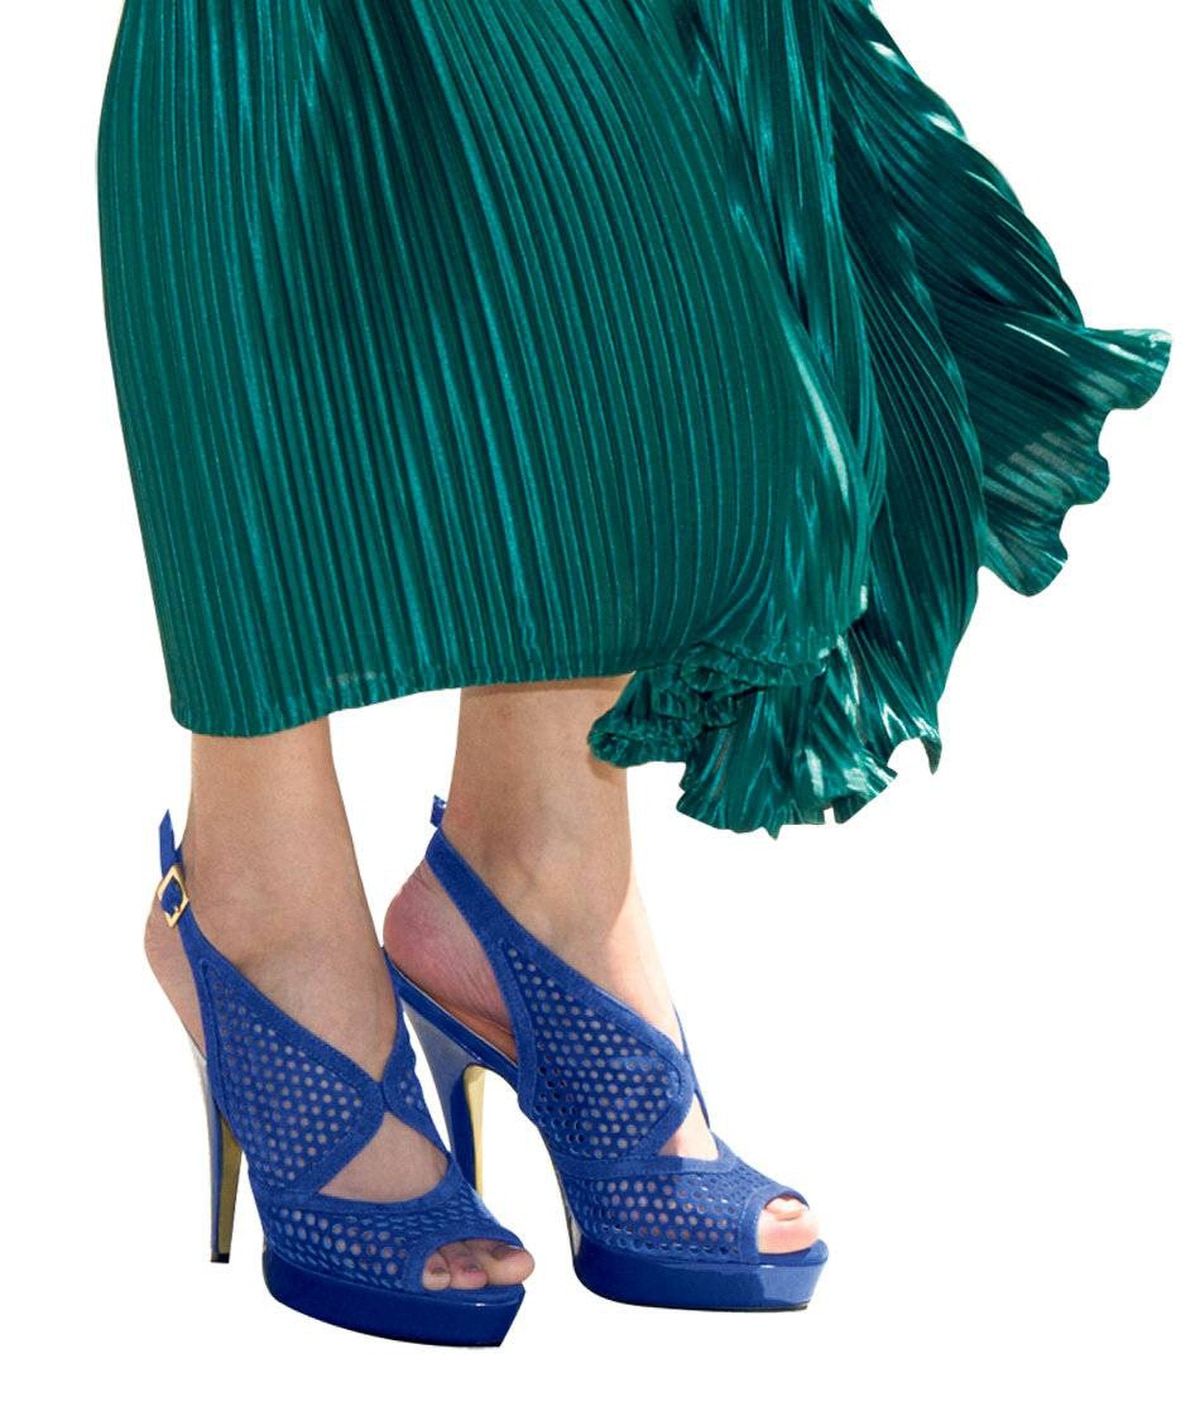 Blue suede mesh keeps feet feeling - and looking - ultracool. David Dixon pumps, $130 at Town Shoes. American Apparel skirt, $68